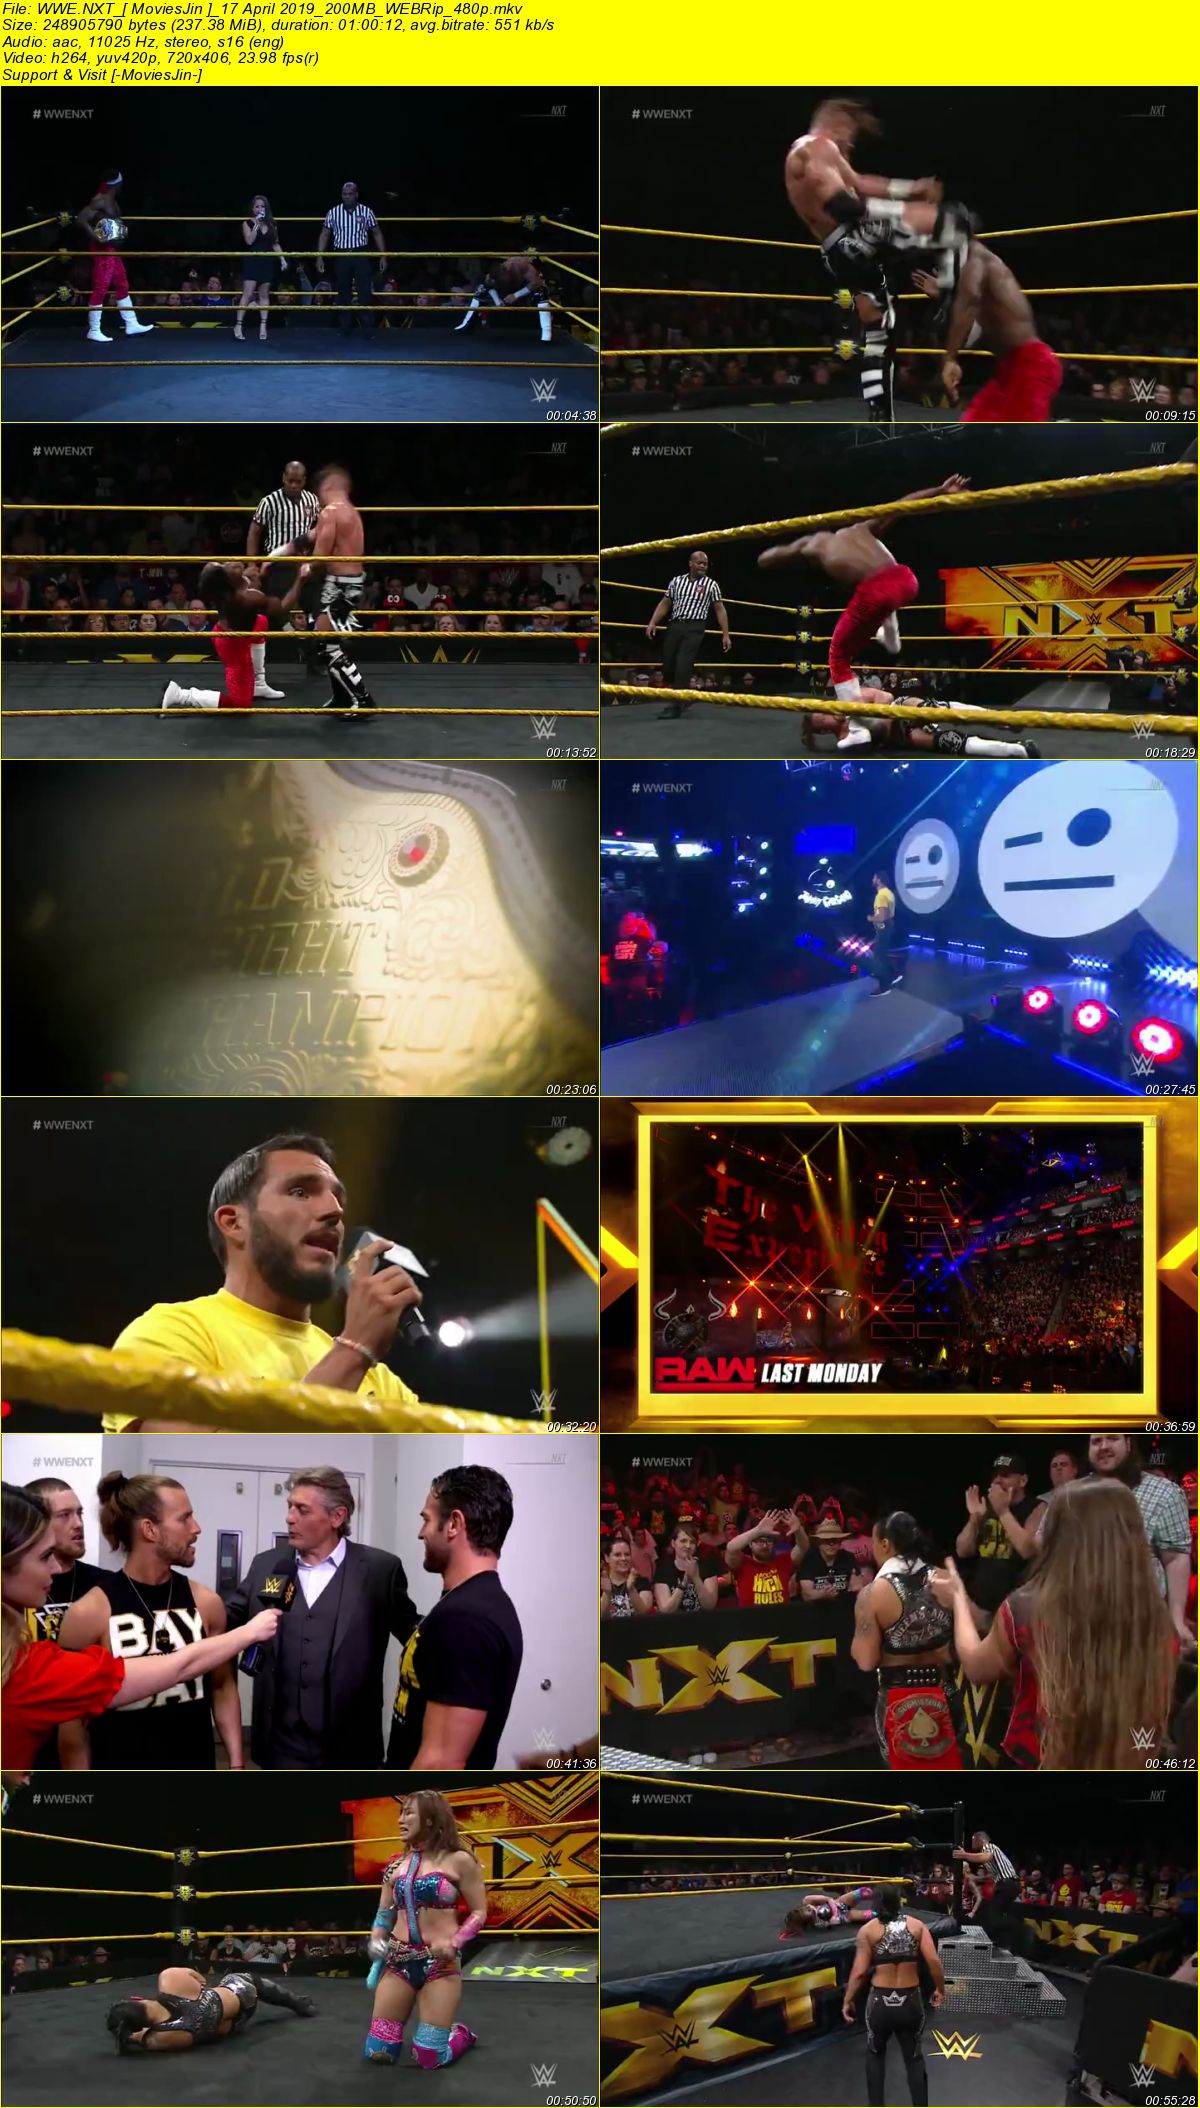 Watch Online WWE NXT Download 17 April 2019 200MB WEBRip 480p Full Download 300mbMovies 9xmovies 8xfilms 7srarhd downloadhub